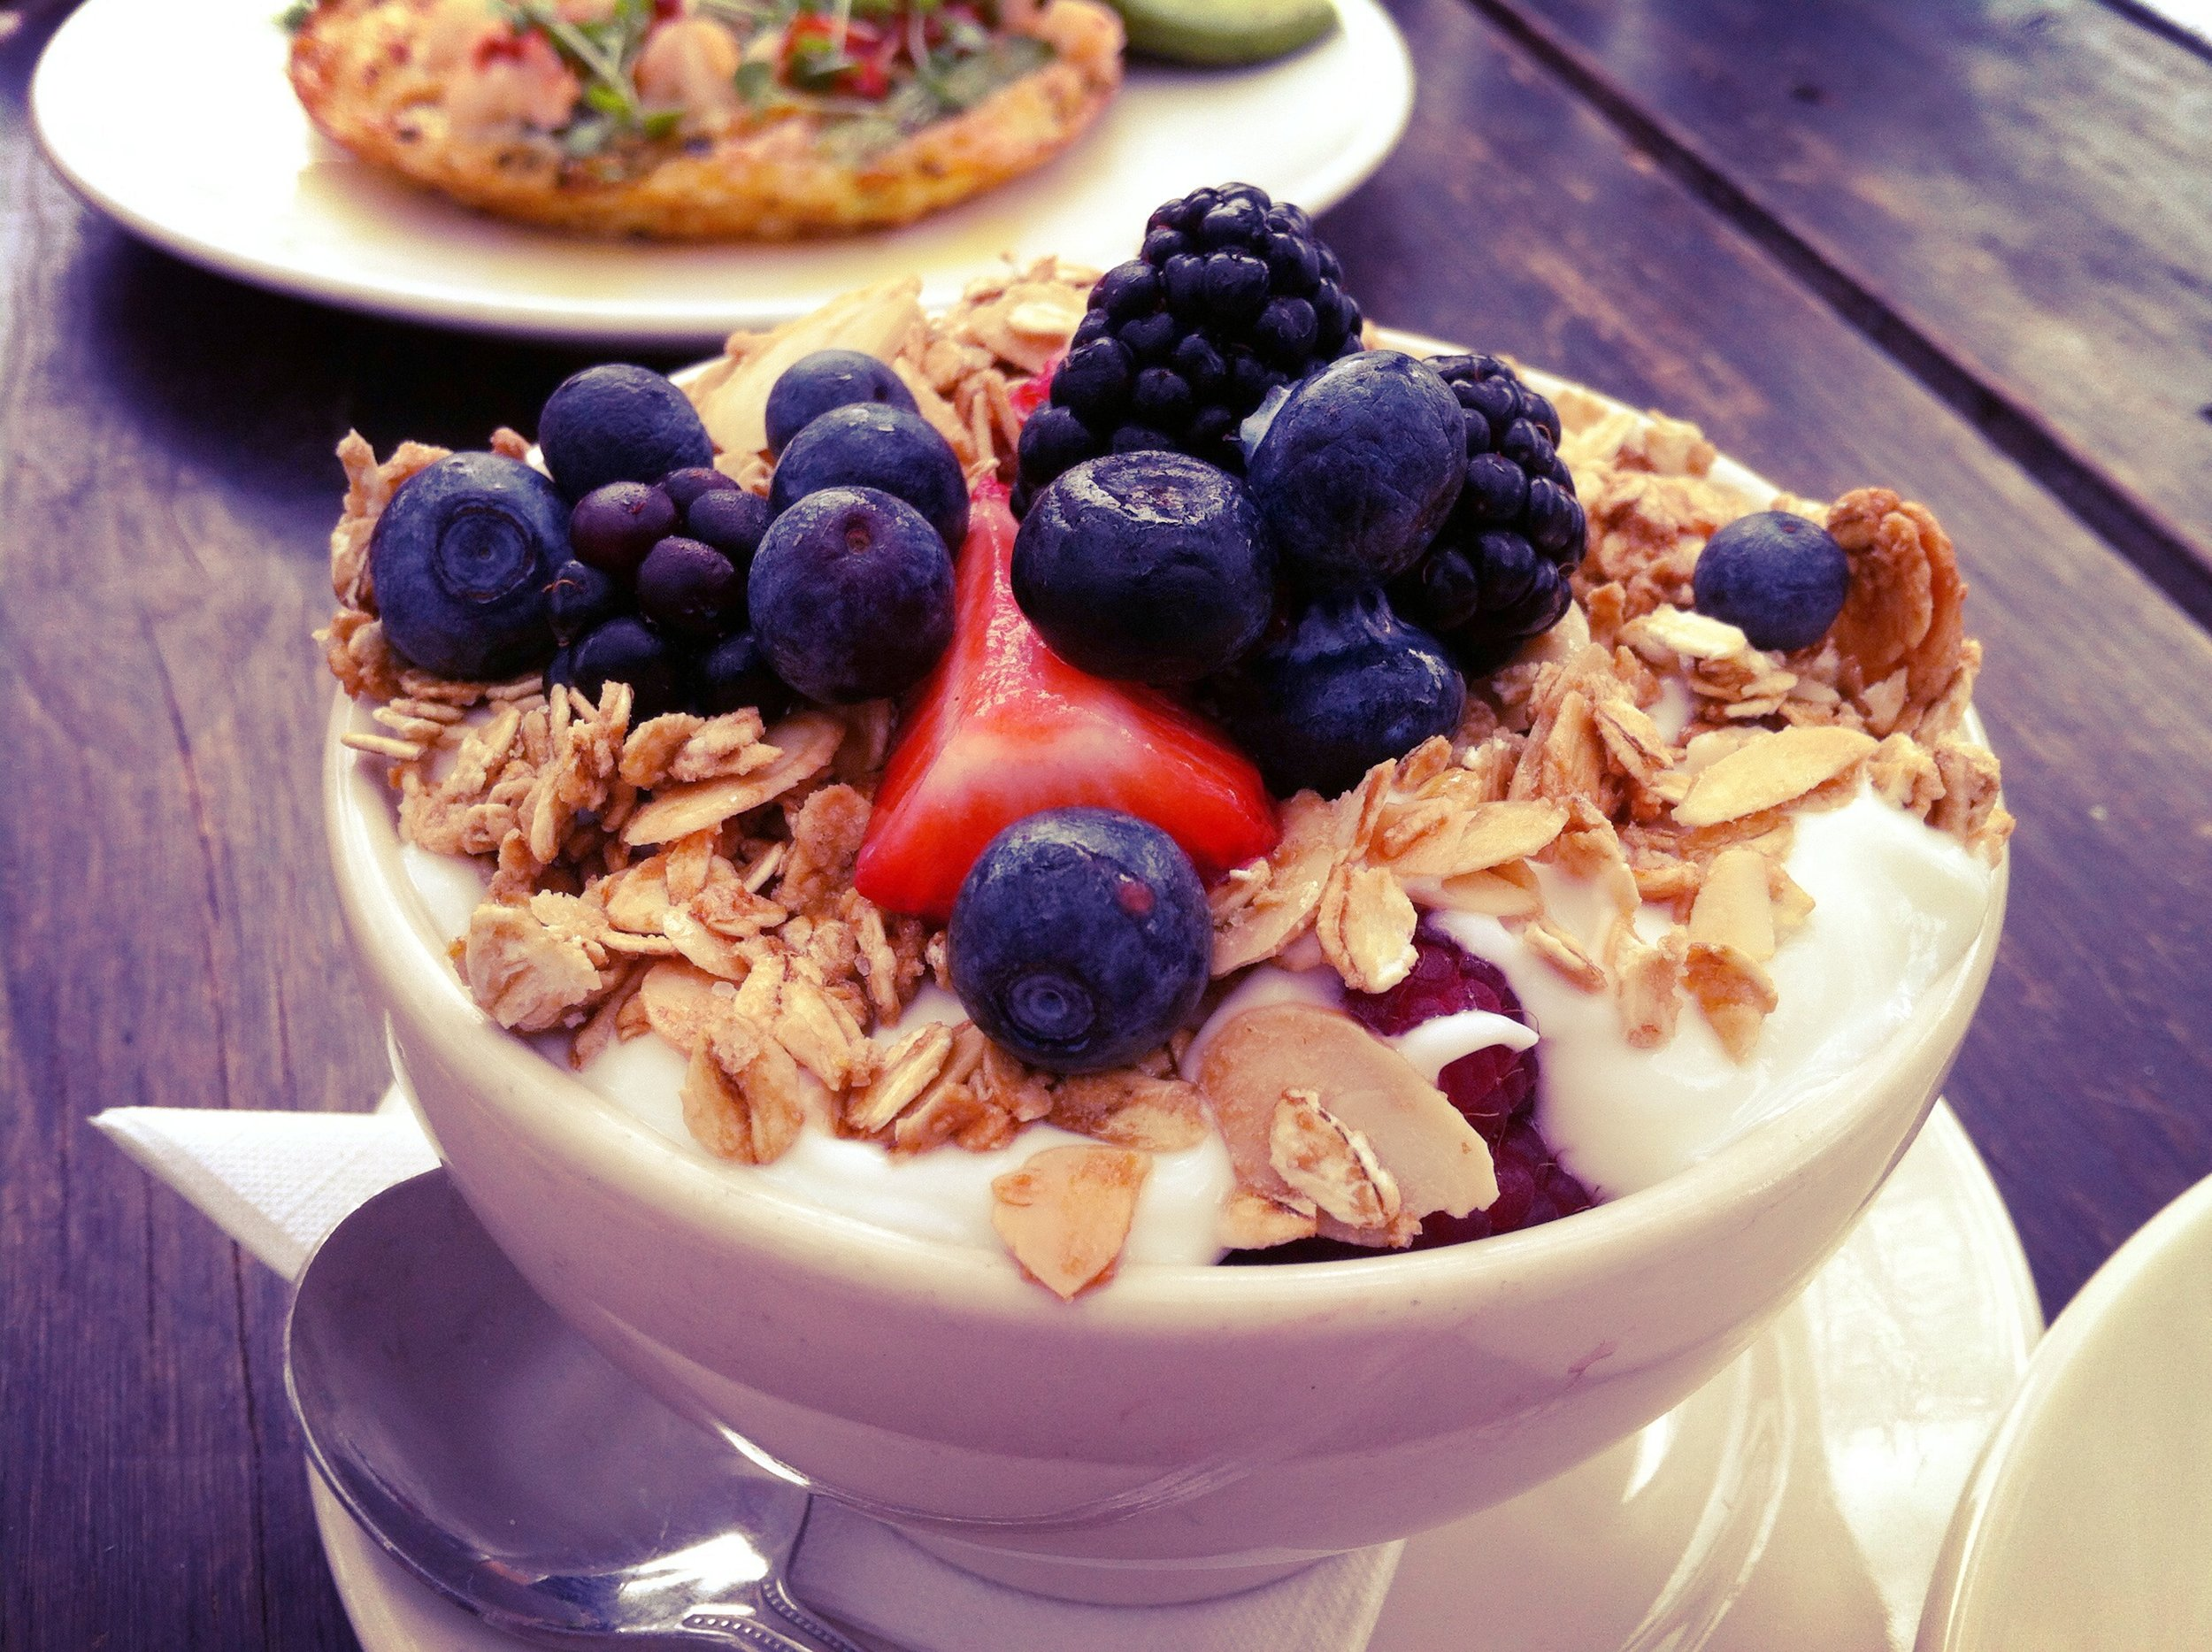 The most amazing yogurt and granola at Perla's